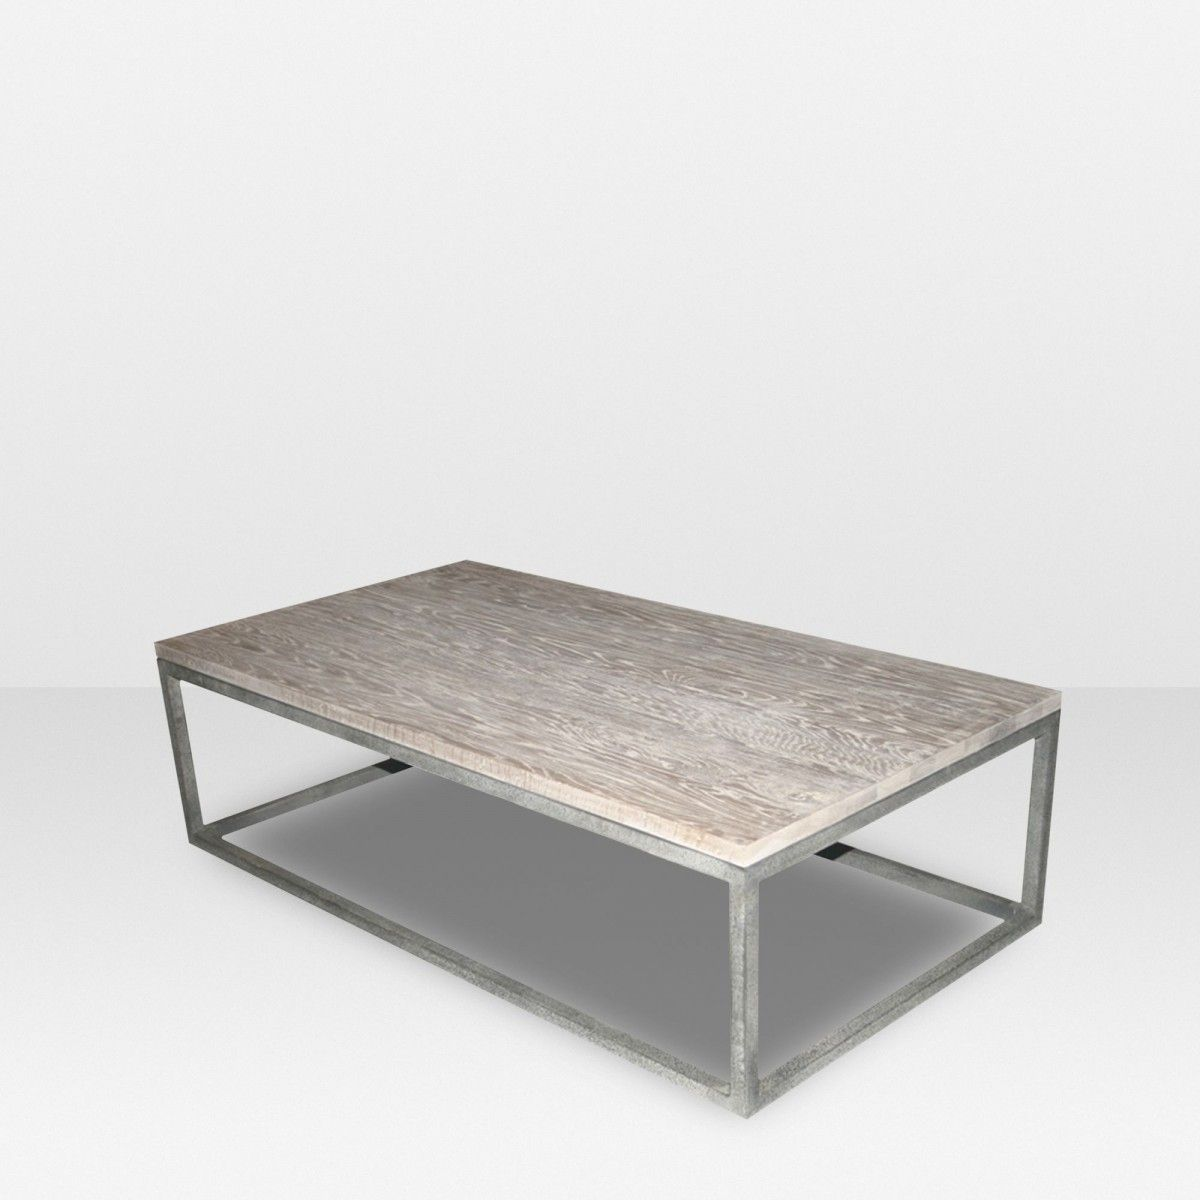 Andover Cocktail Table ELTE Market Coffee Tables Pinterest